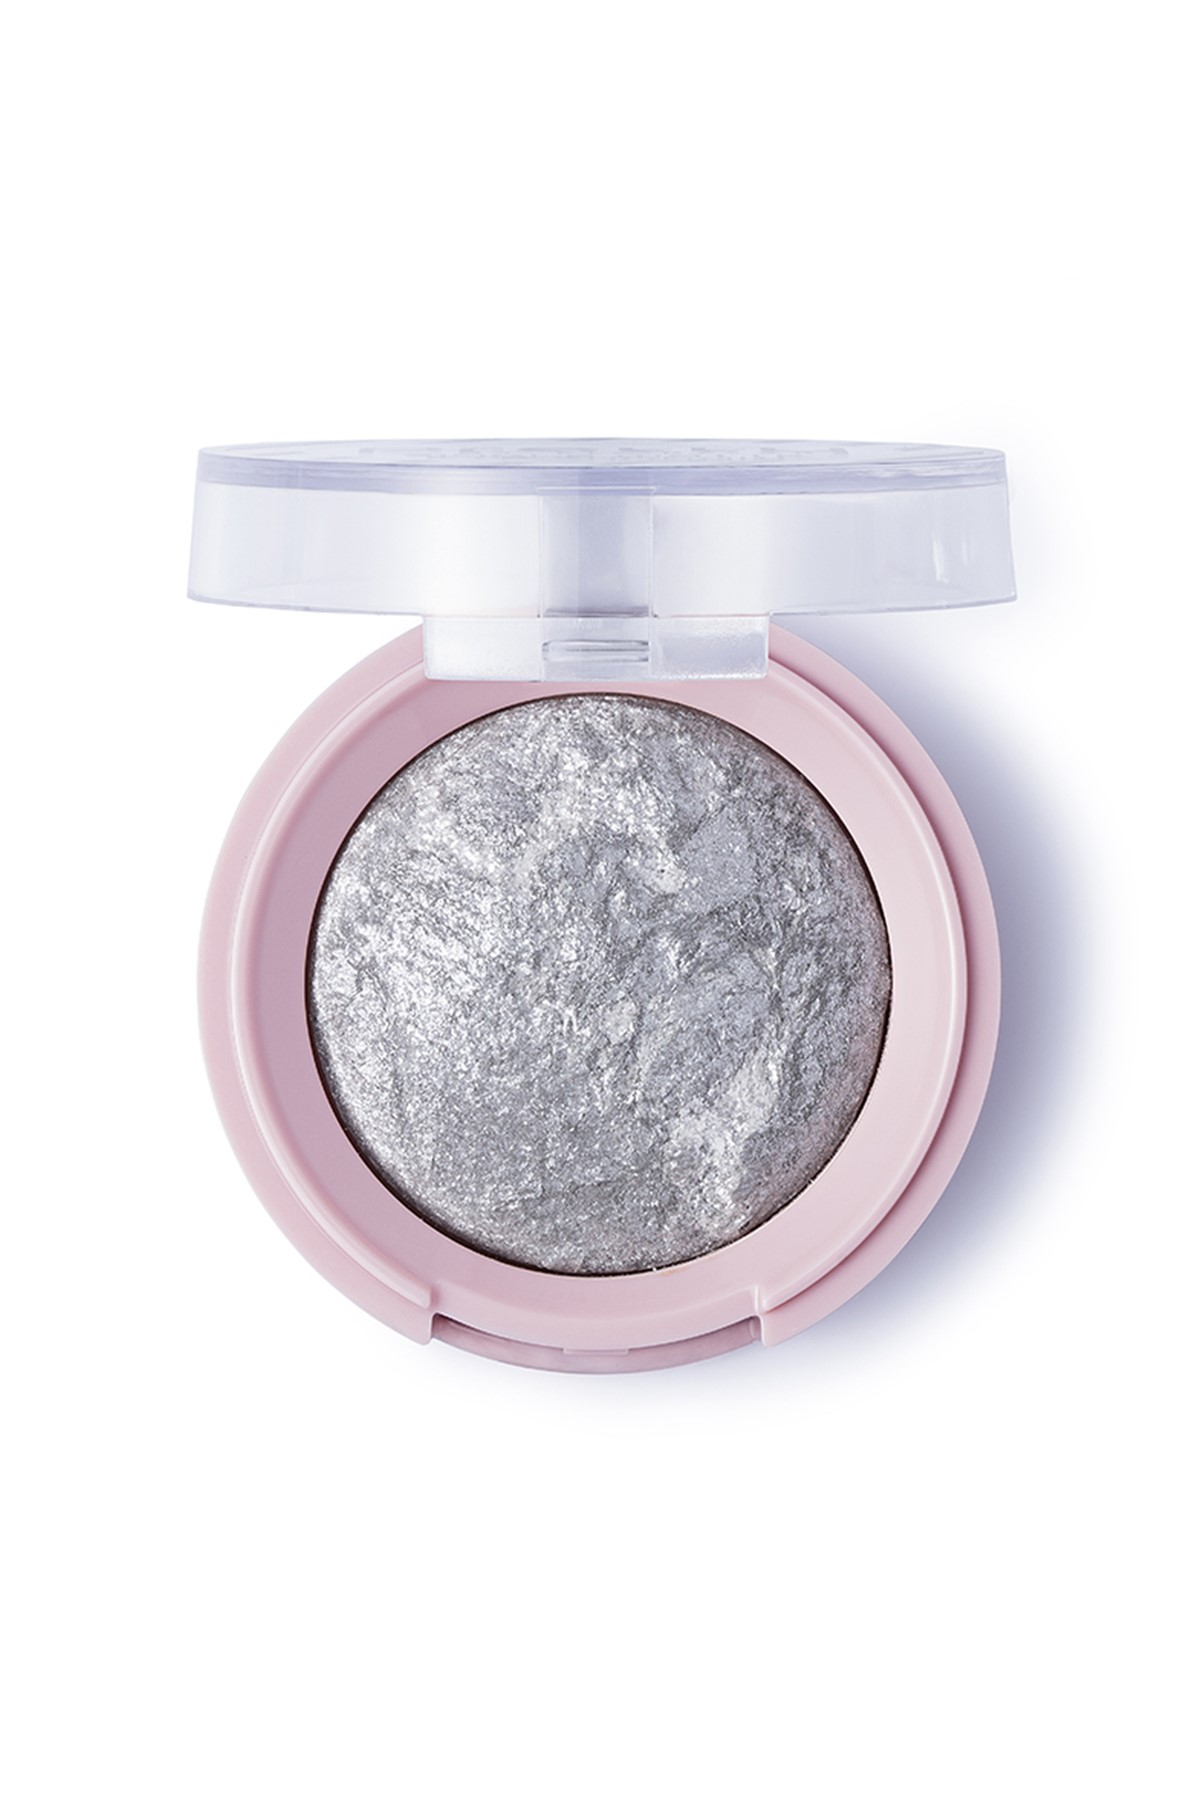 Flormar Göz Farı – Pretty By Stars Baked Eye Shadow 05 S.blaze 8690604466283 – 24.26 TL